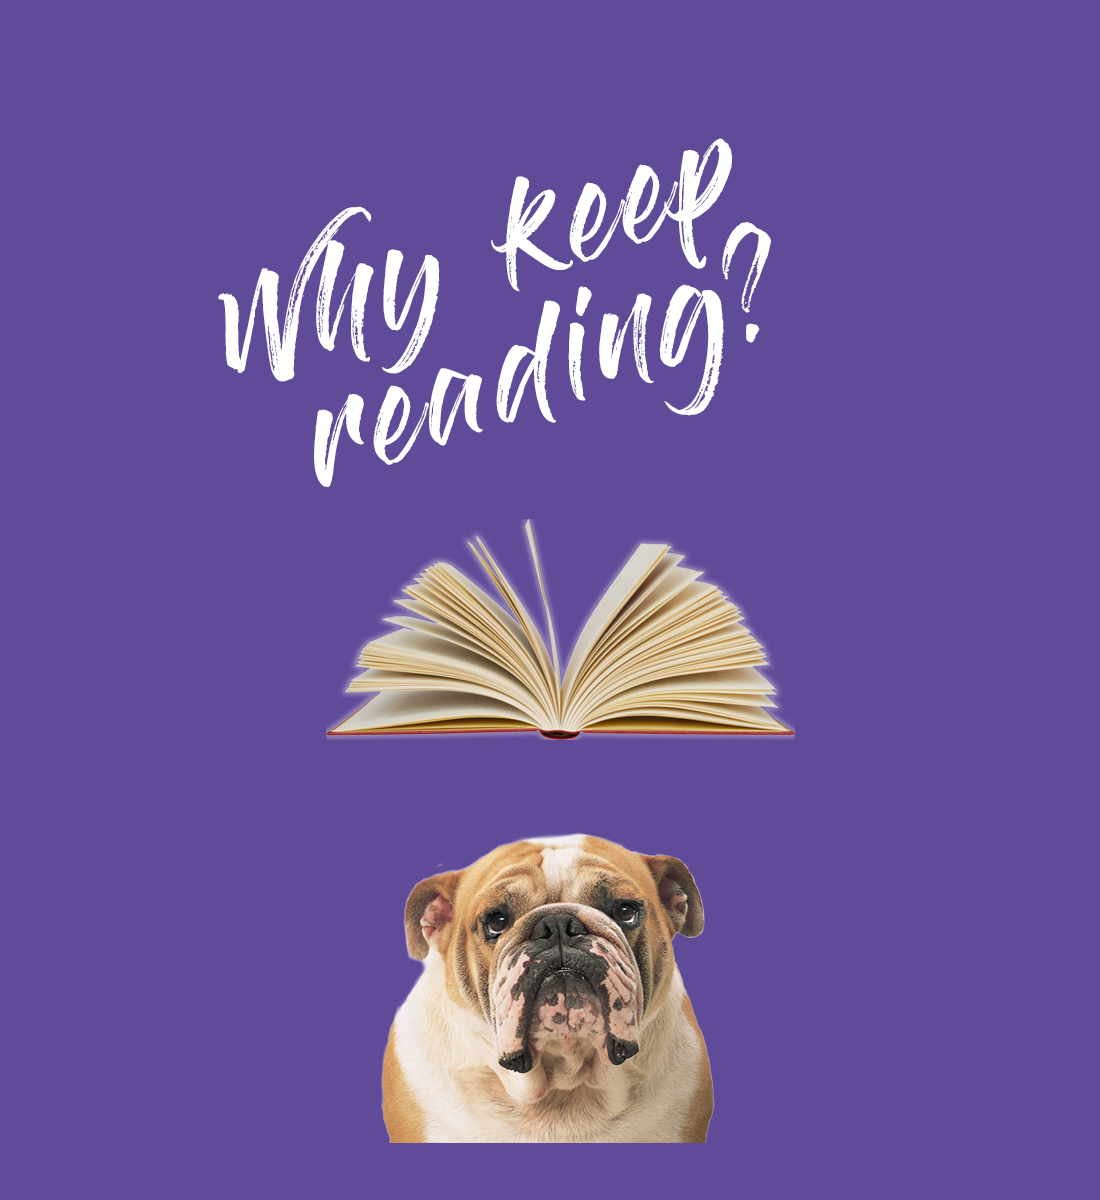 whykeepreading.png